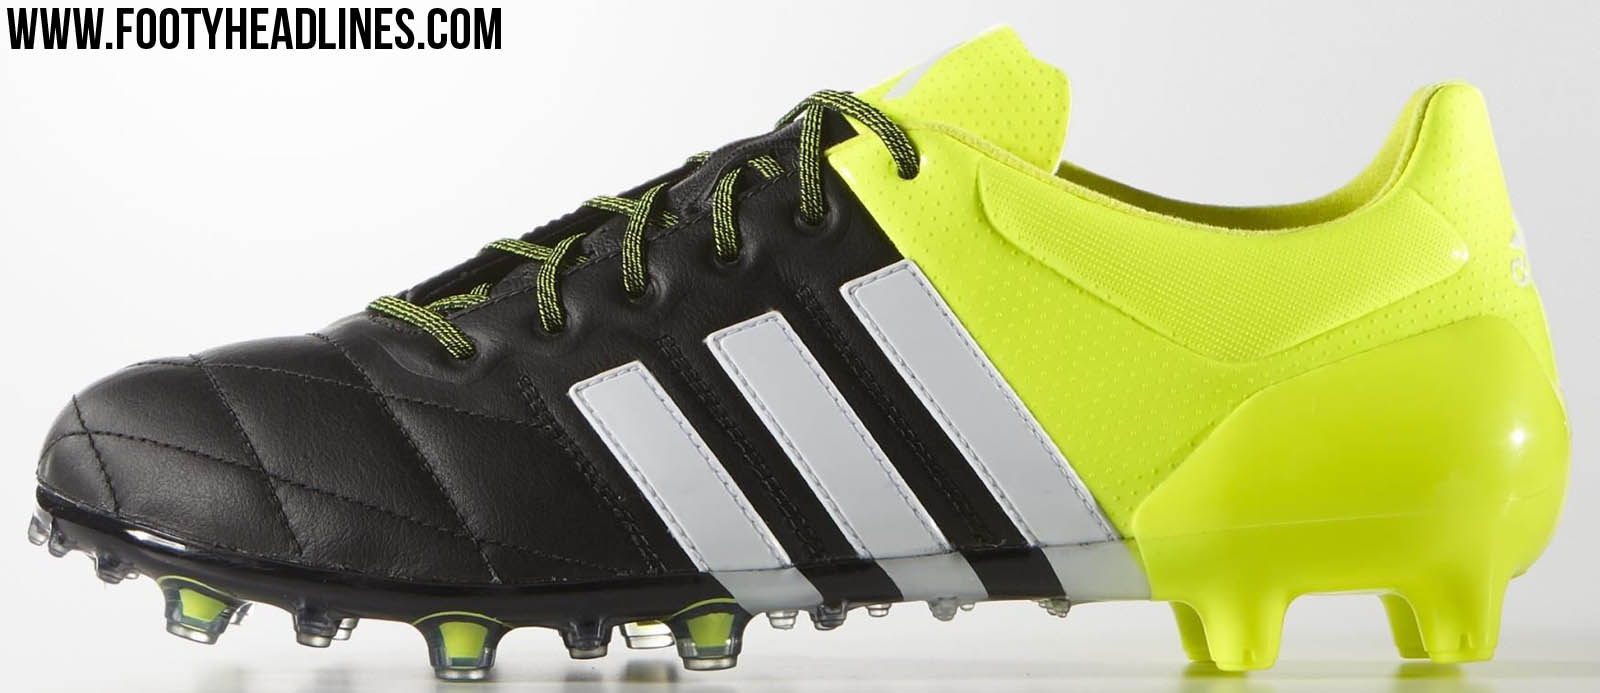 adidas ace 2015 leather boots released footy headlines